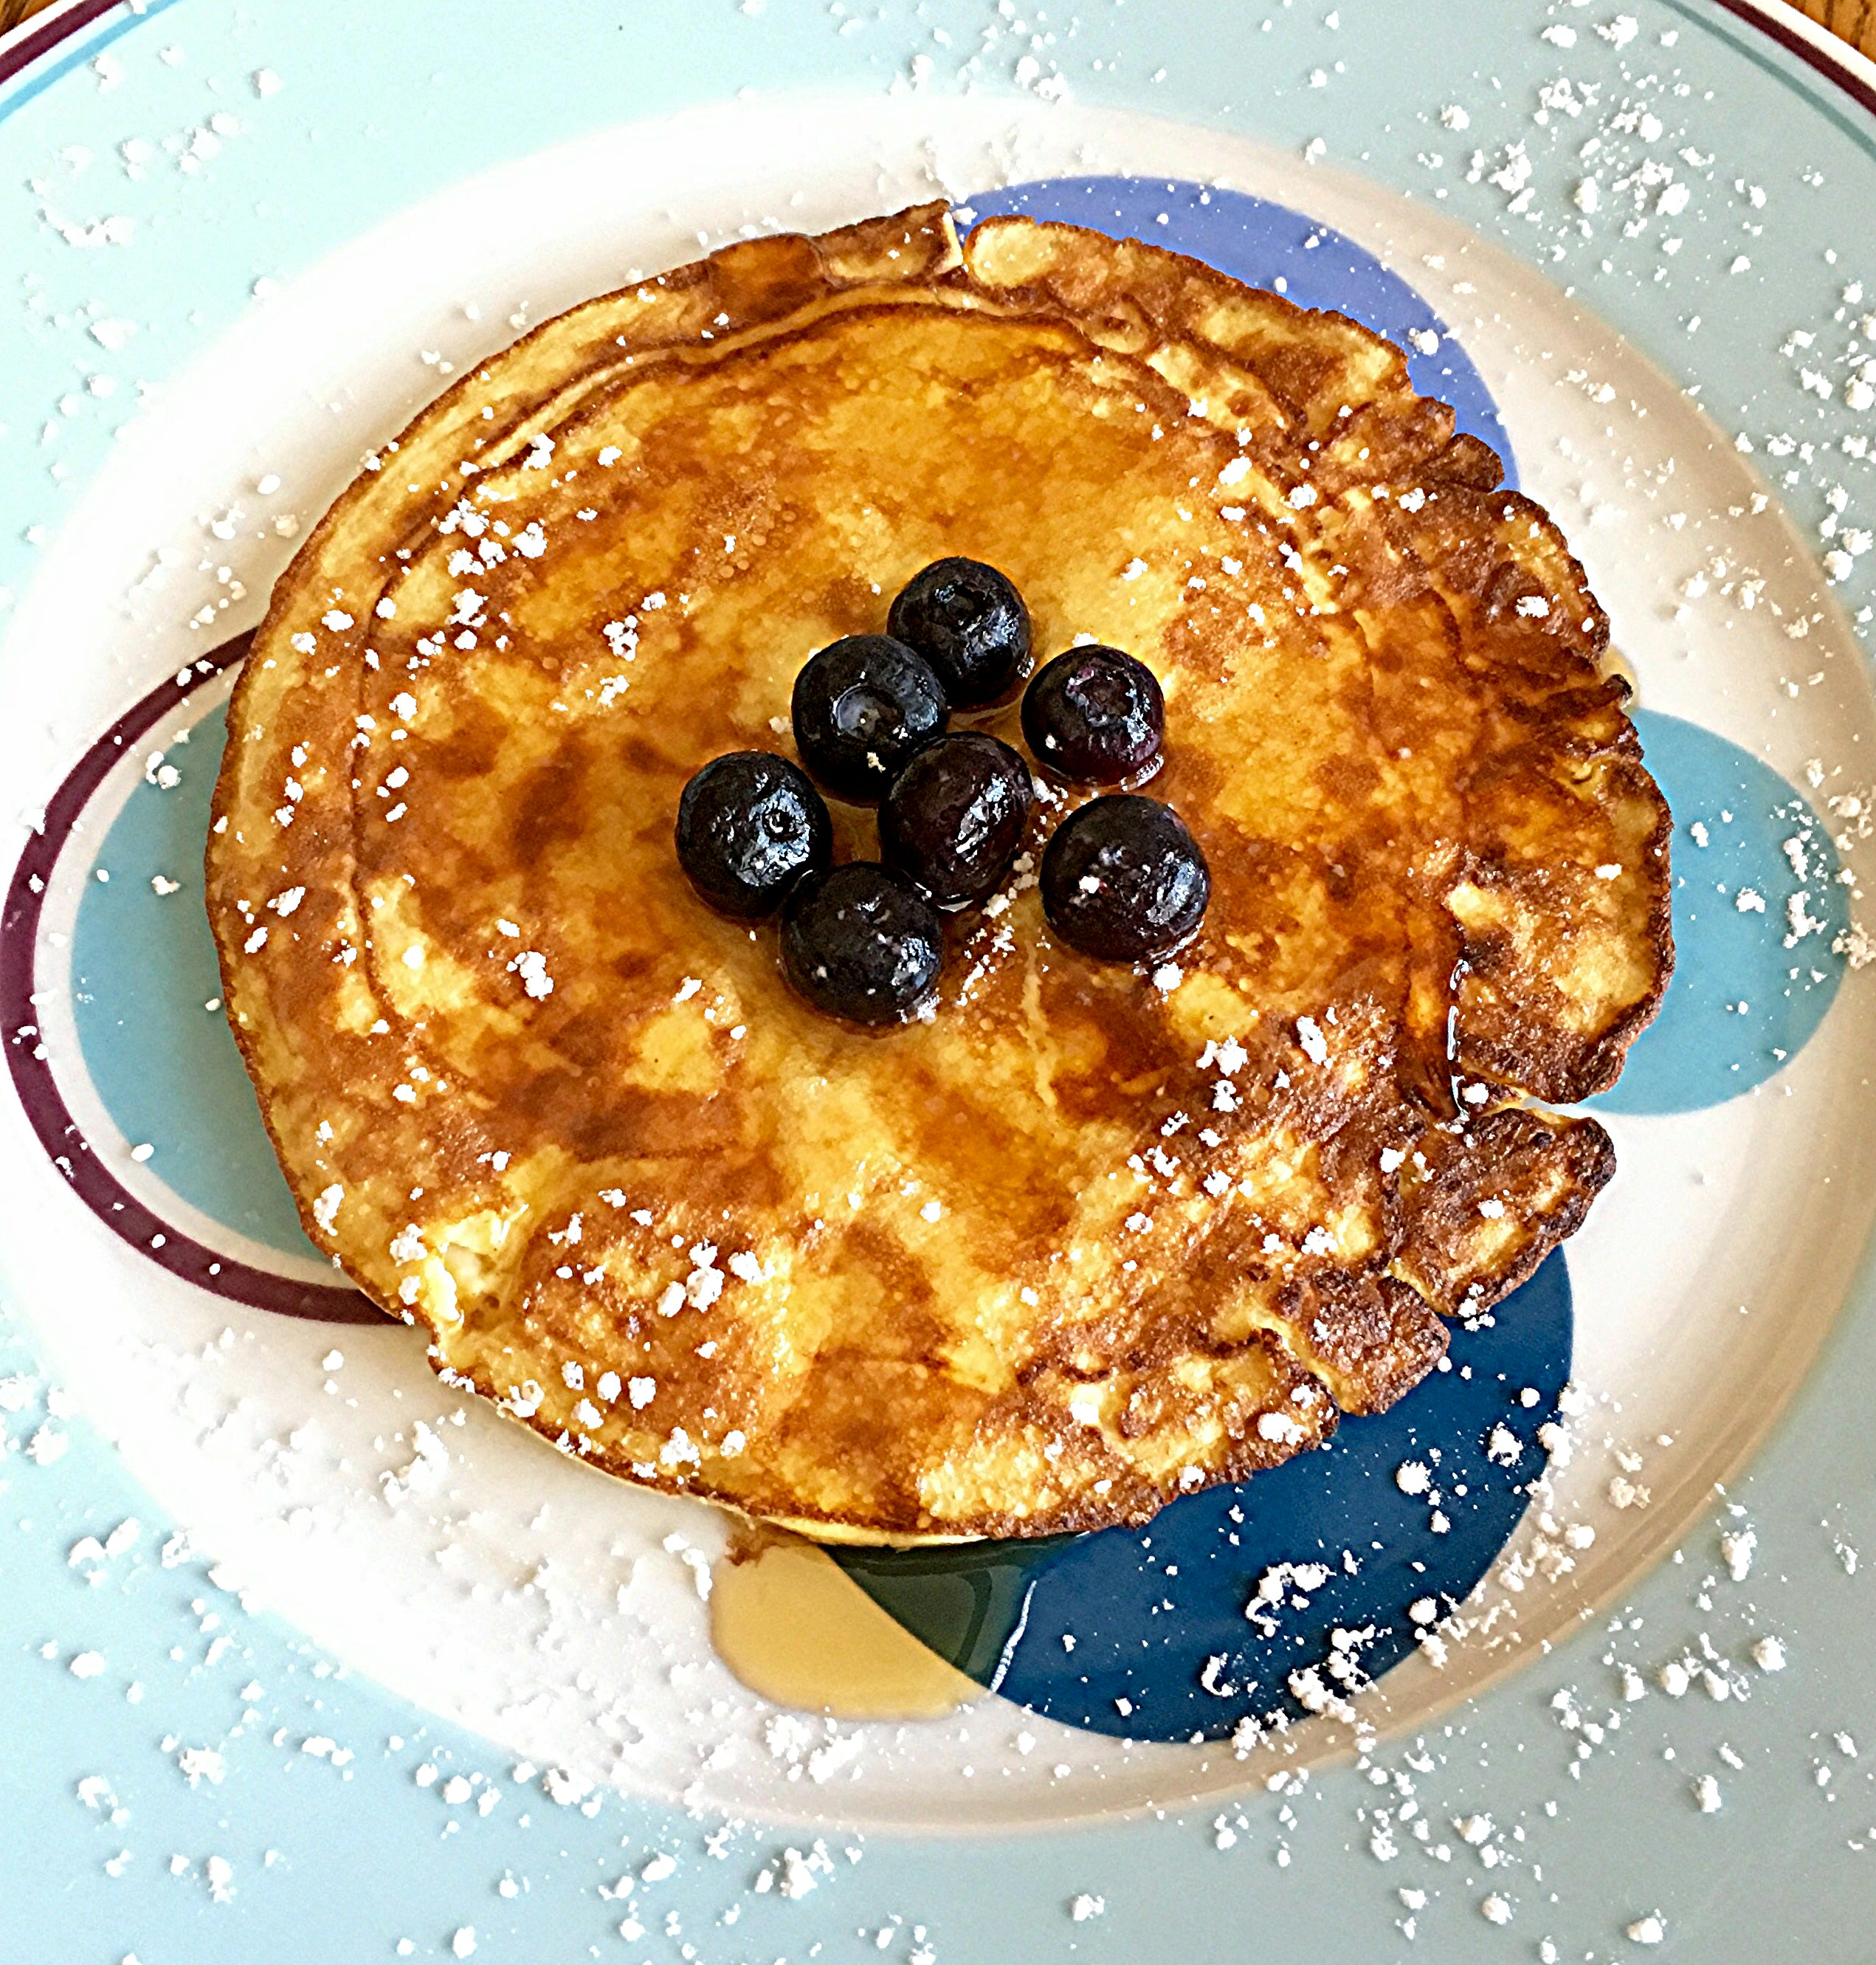 Low-Carb Pancakes or Crepes Larissa McDowell